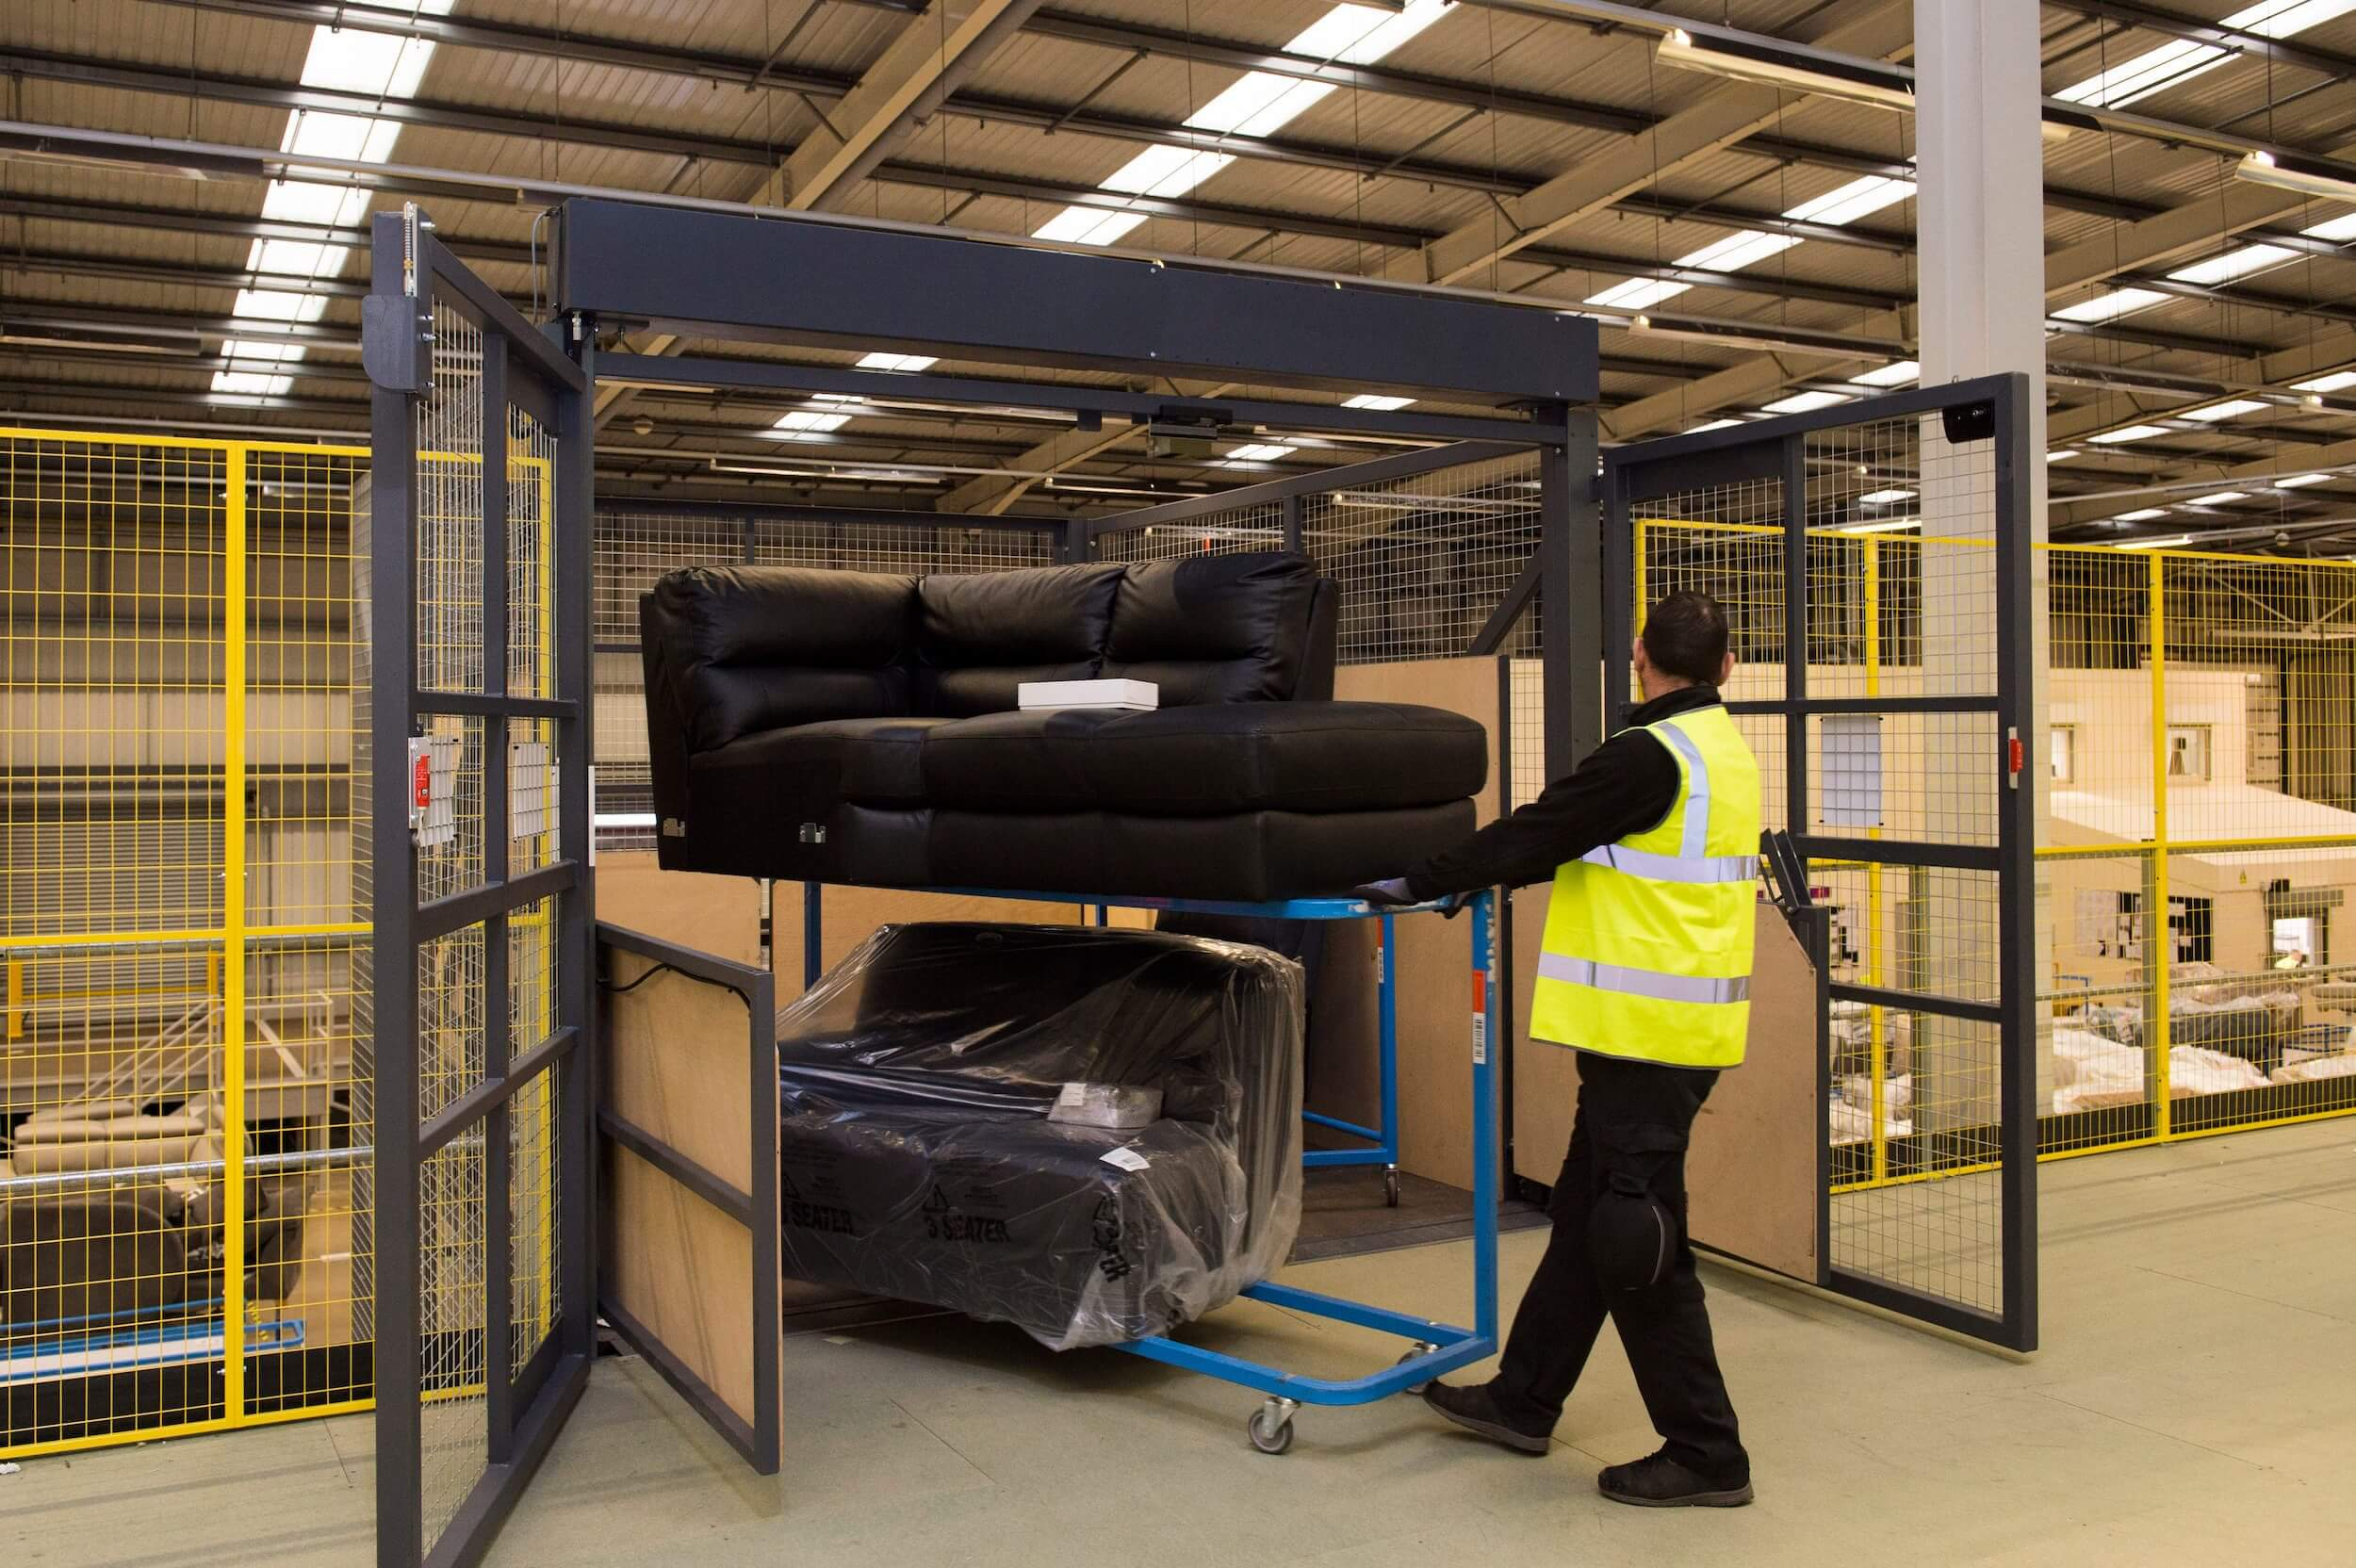 Man removing sofas from goods lift on second floor